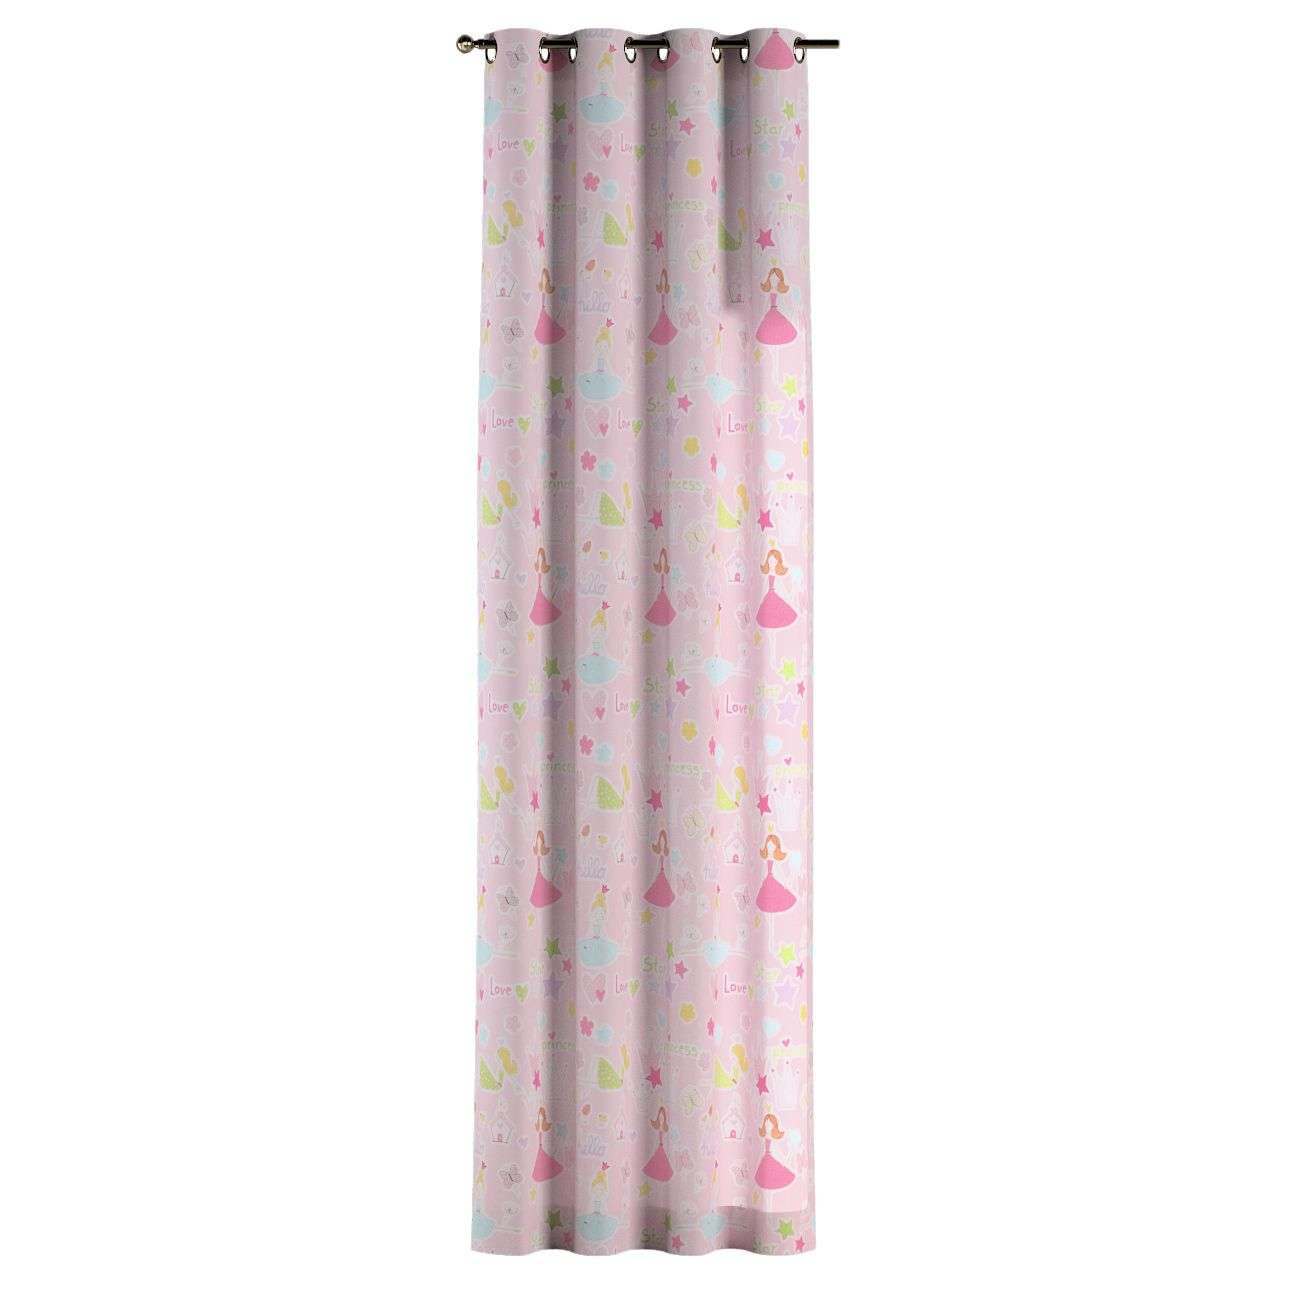 Eyelet curtains 130 x 260 cm (51 x 102 inch) in collection Little World, fabric: 141-50